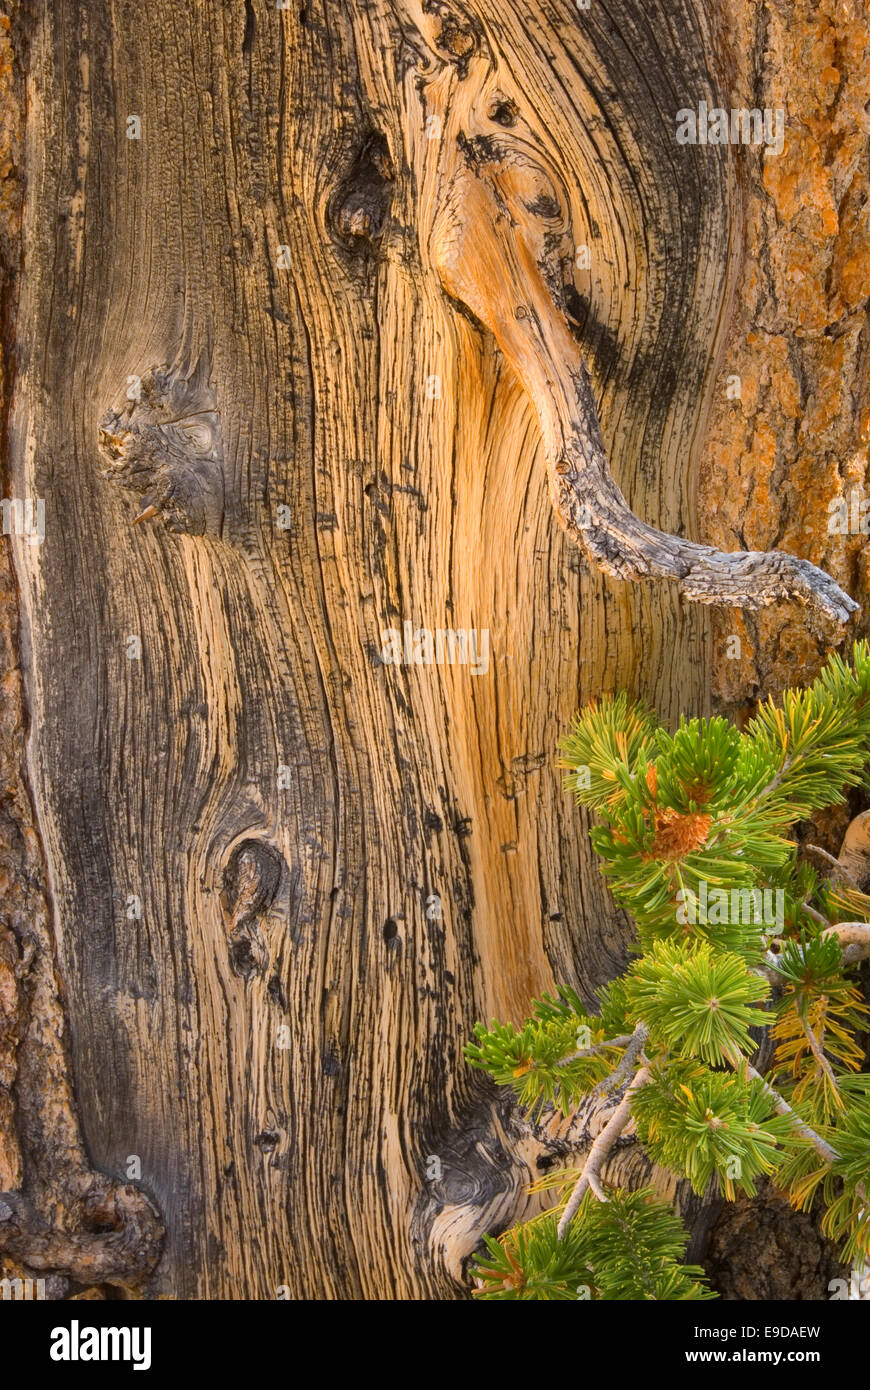 Bristlecone pine wood, Ancient Bristlecone Pine Forest, Inyo National Forest, California Stock Photo